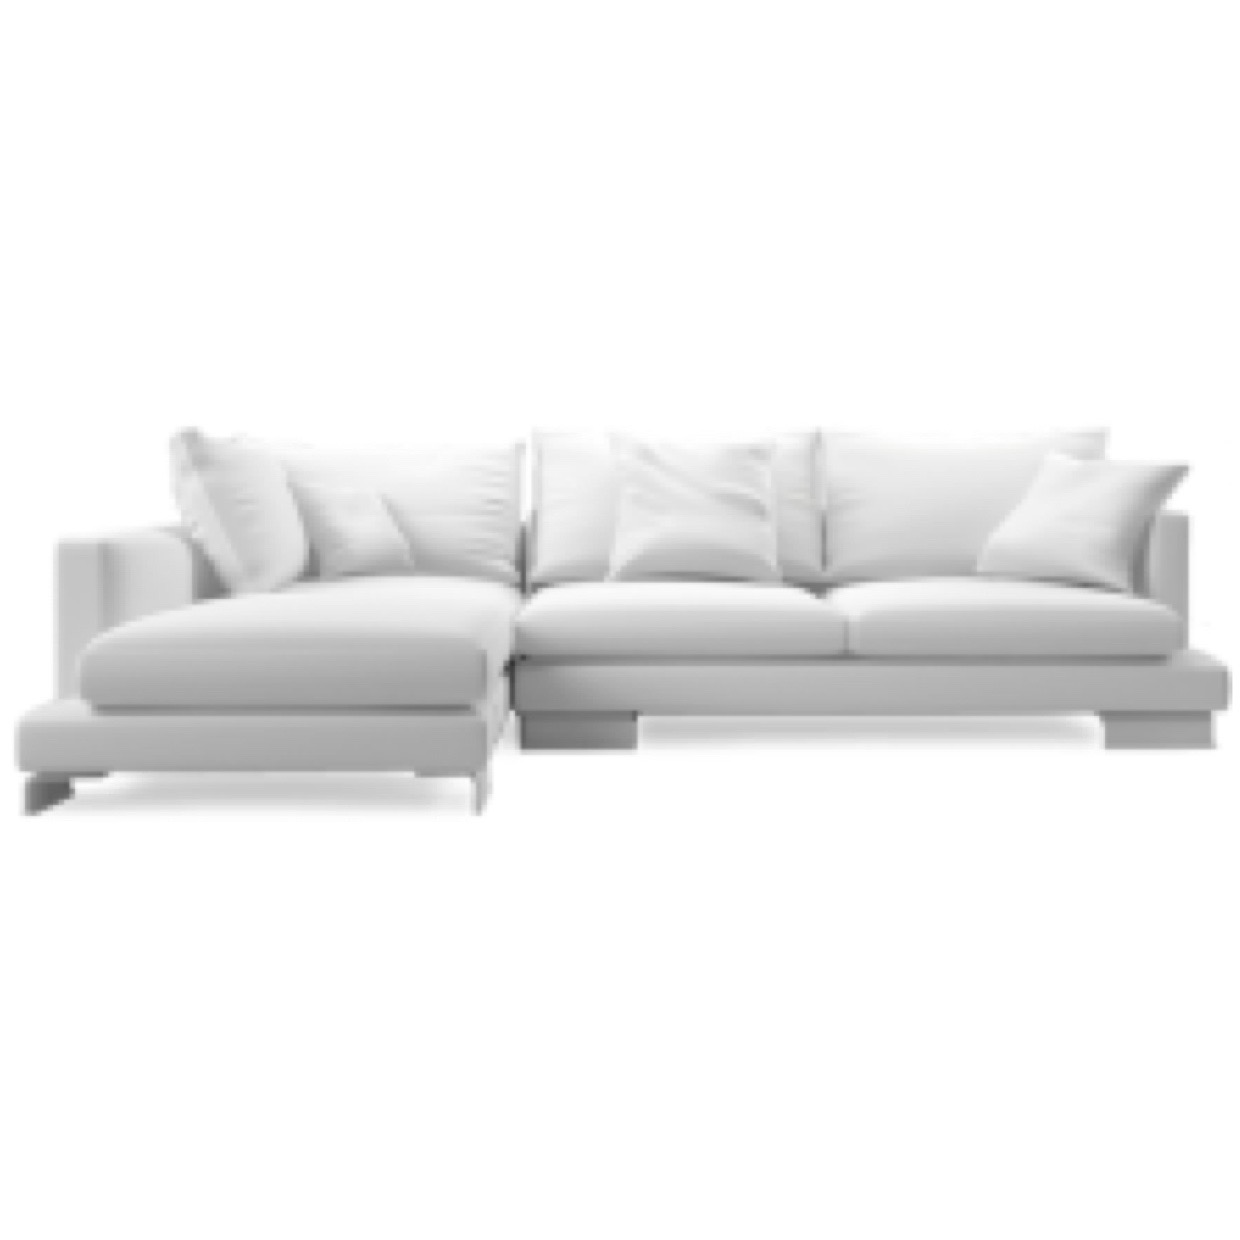 35% OFF - NOW $4,875